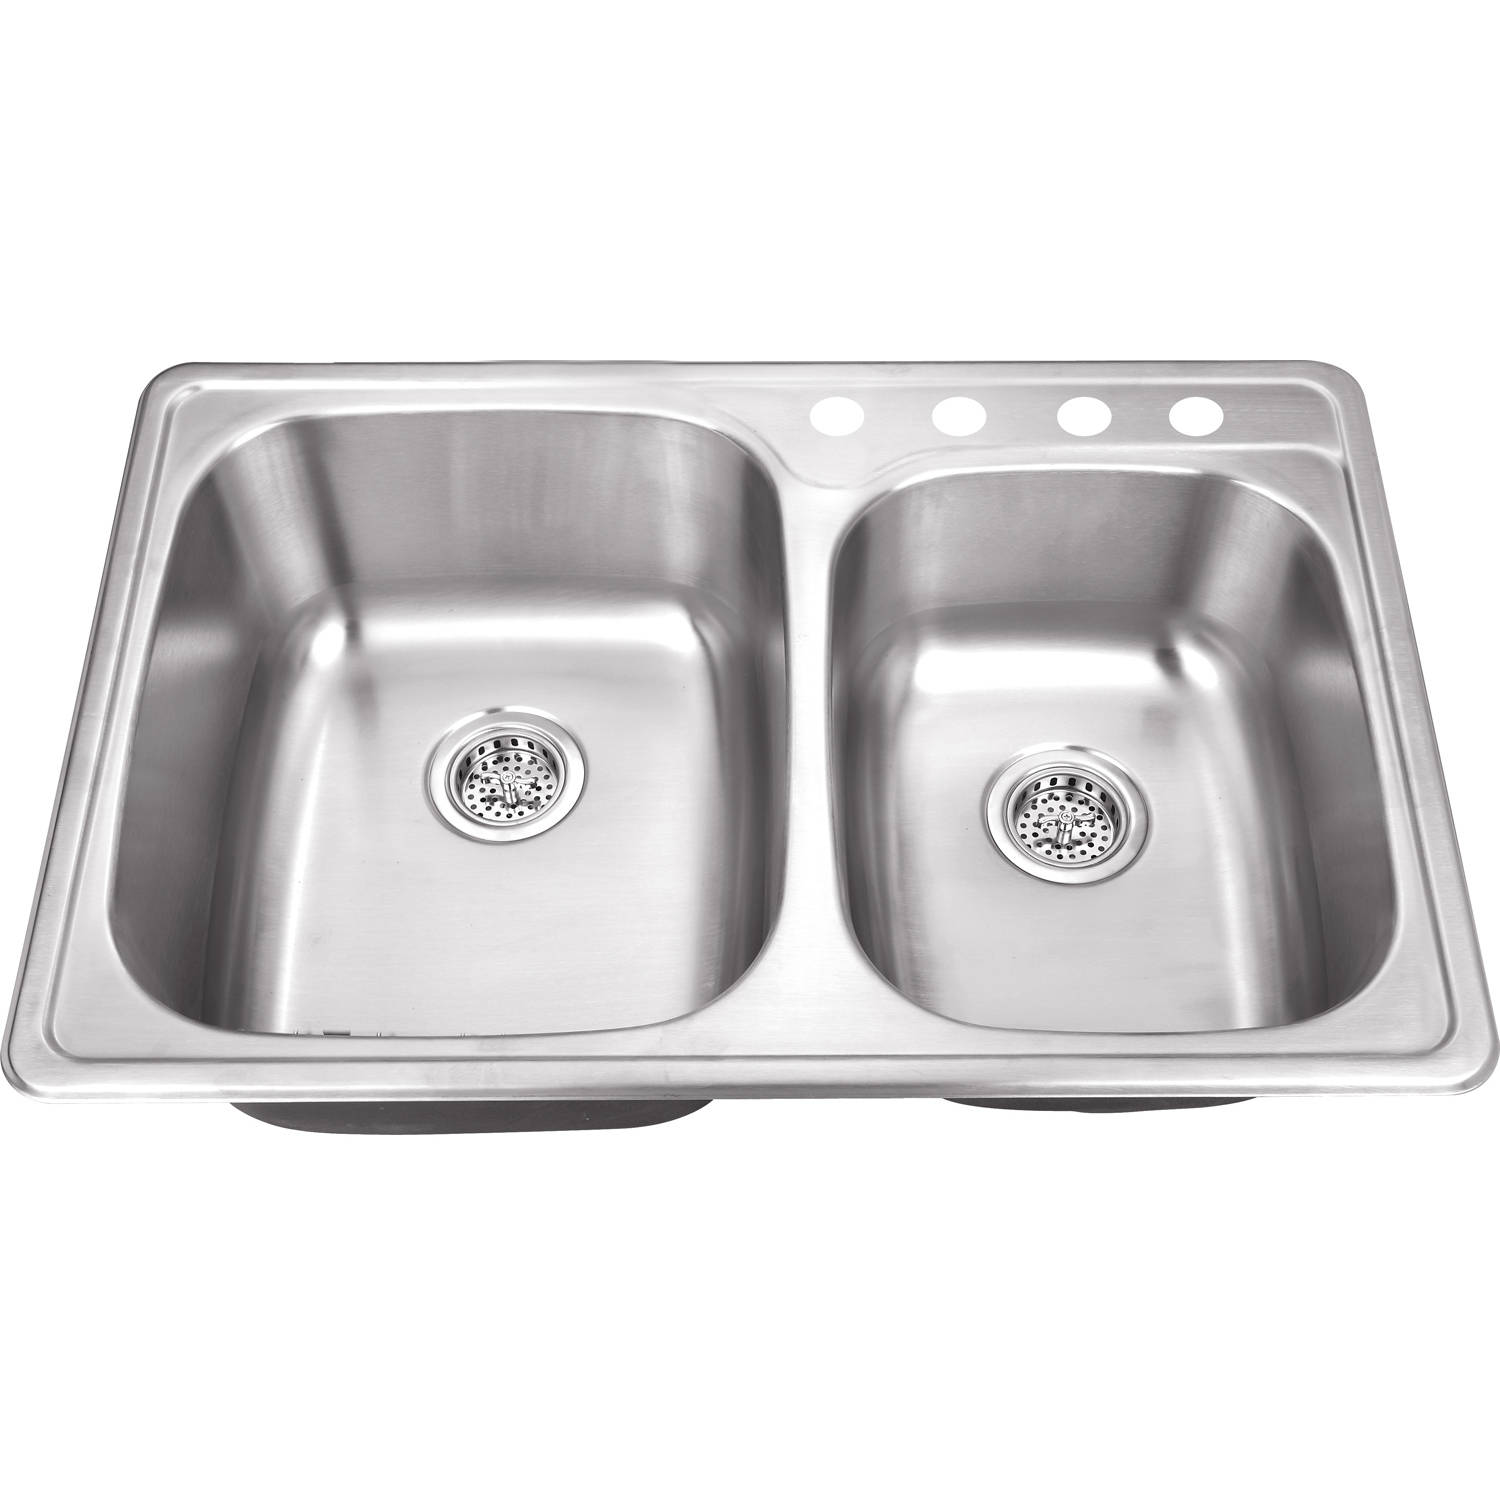 Magnus Sinks 33-1/8-in x 22-in 20 Gauge Stainless Steel Double Bowl Kitchen Sink